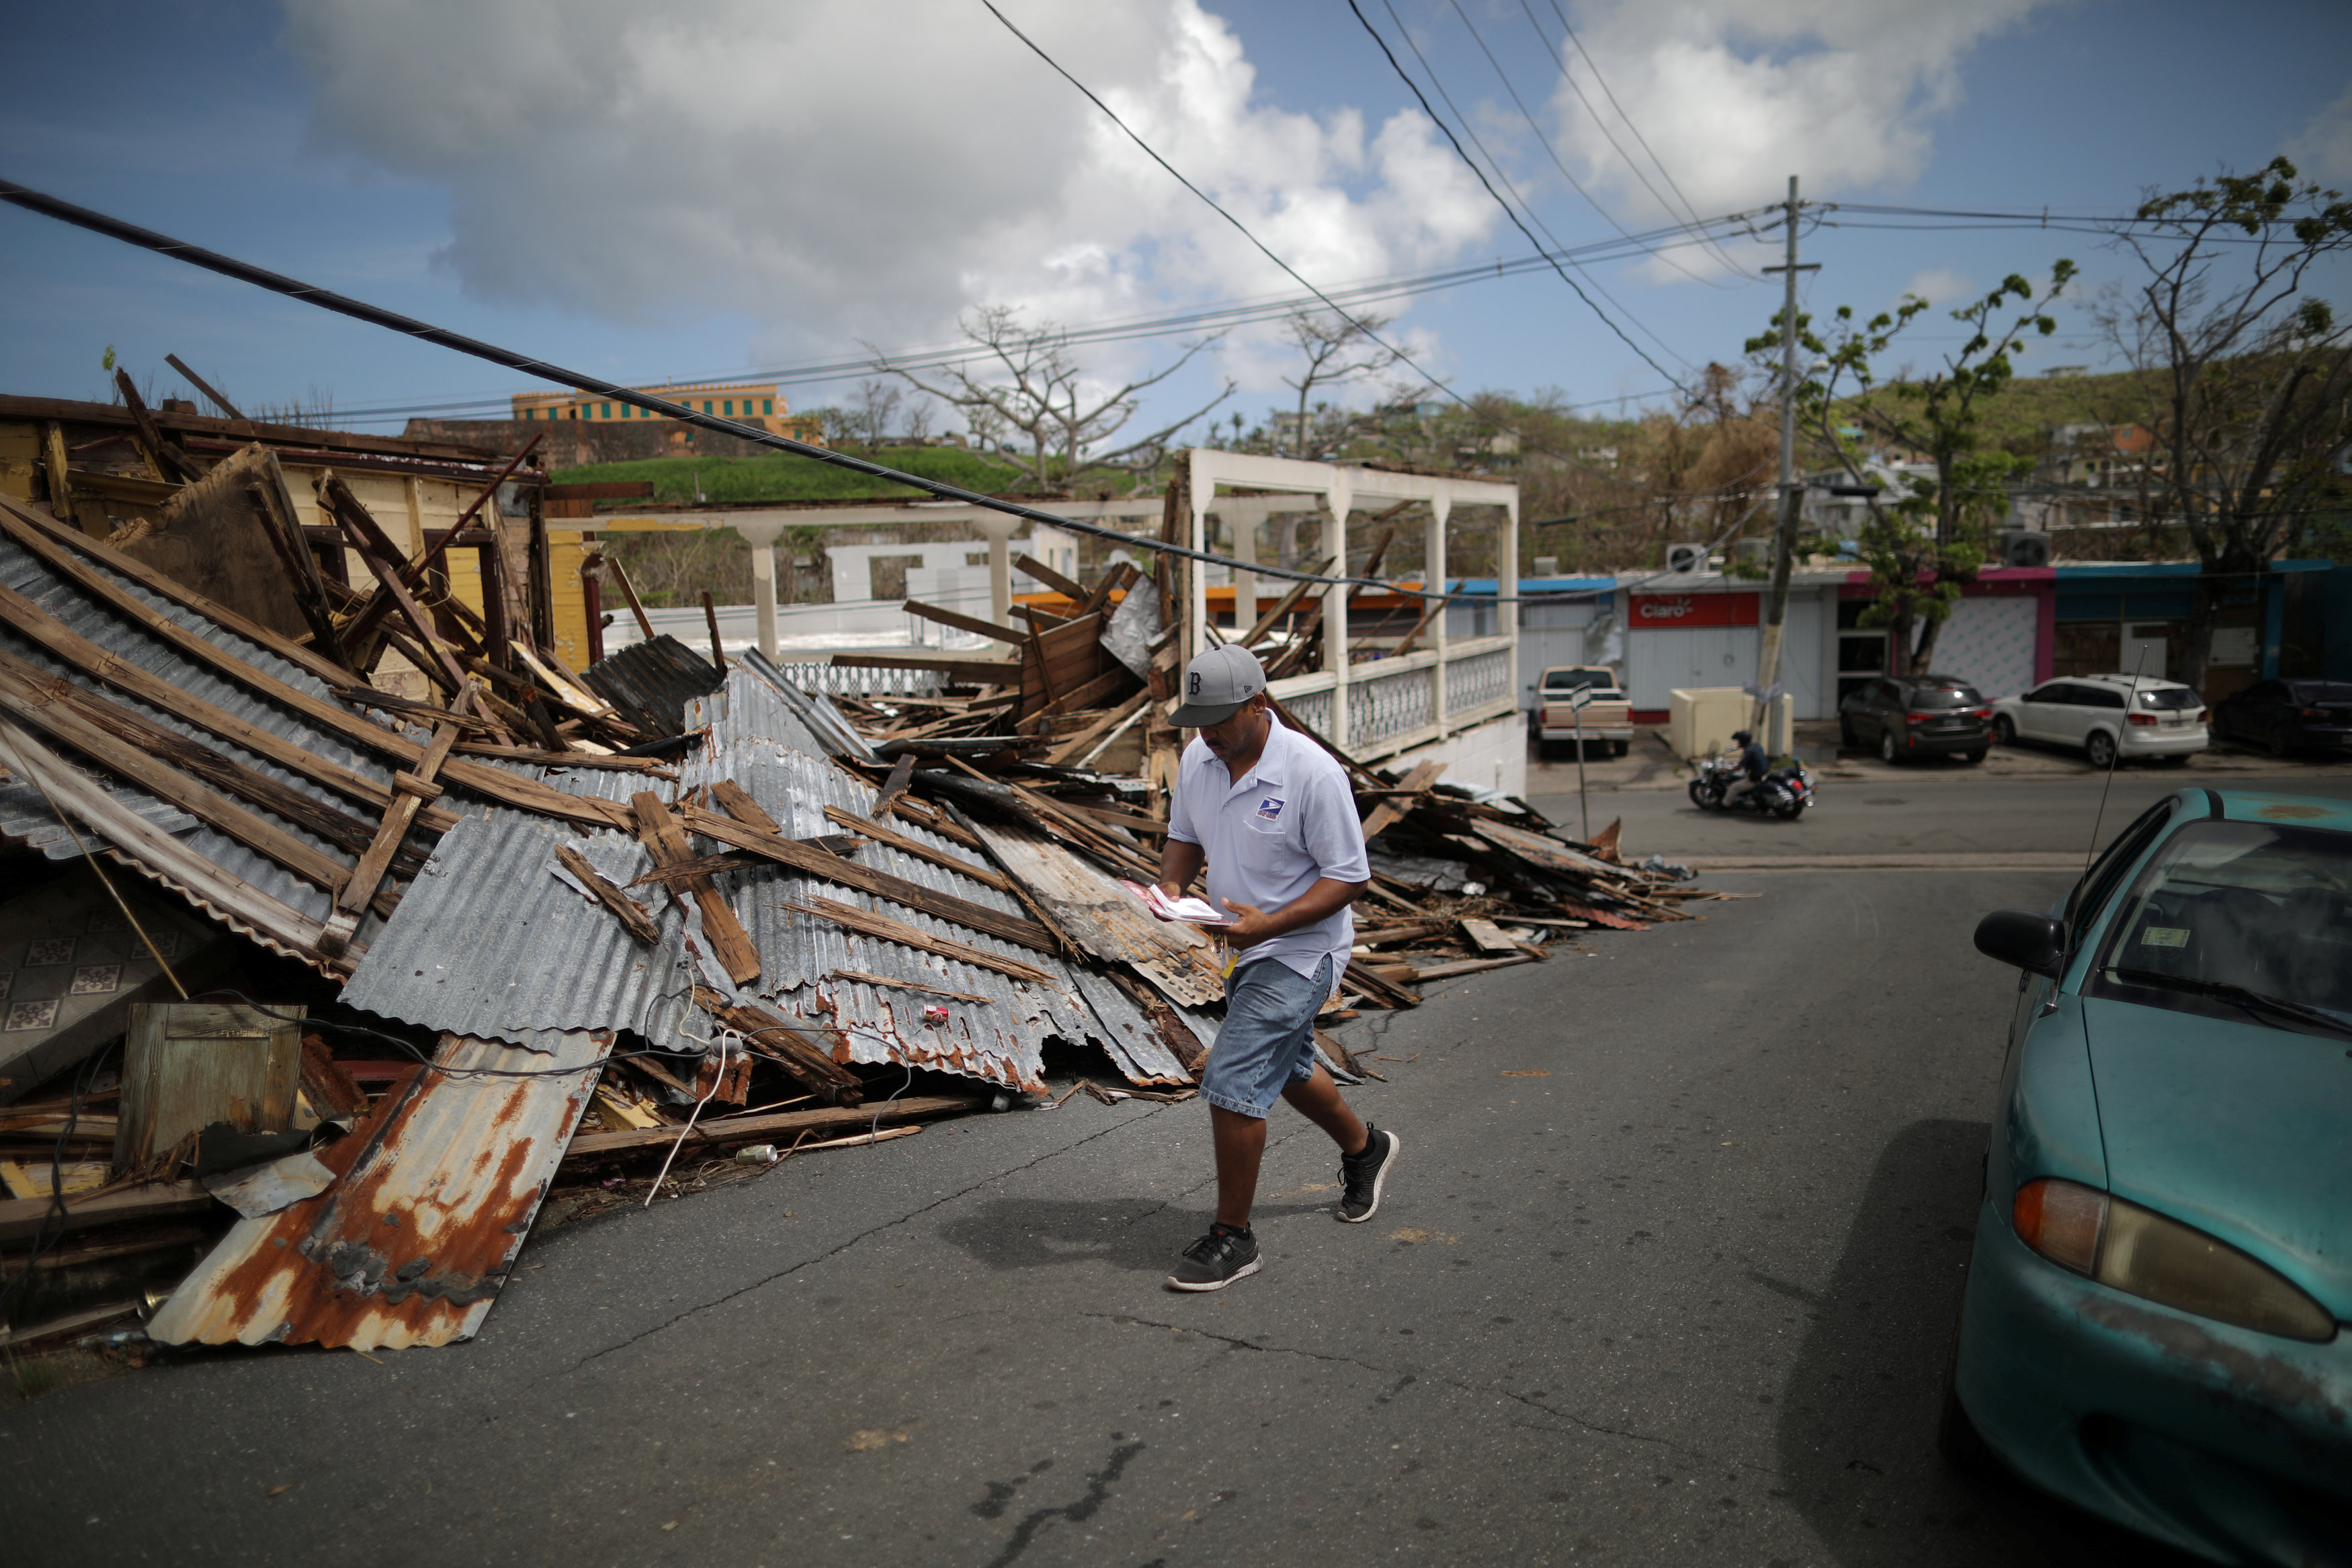 Luis Menendez, a mail man for the U.S. Postal Service, delivers mail at an area affected by Hurricane Maria in the island of Vieques, Puerto Rico, October 7, 2017